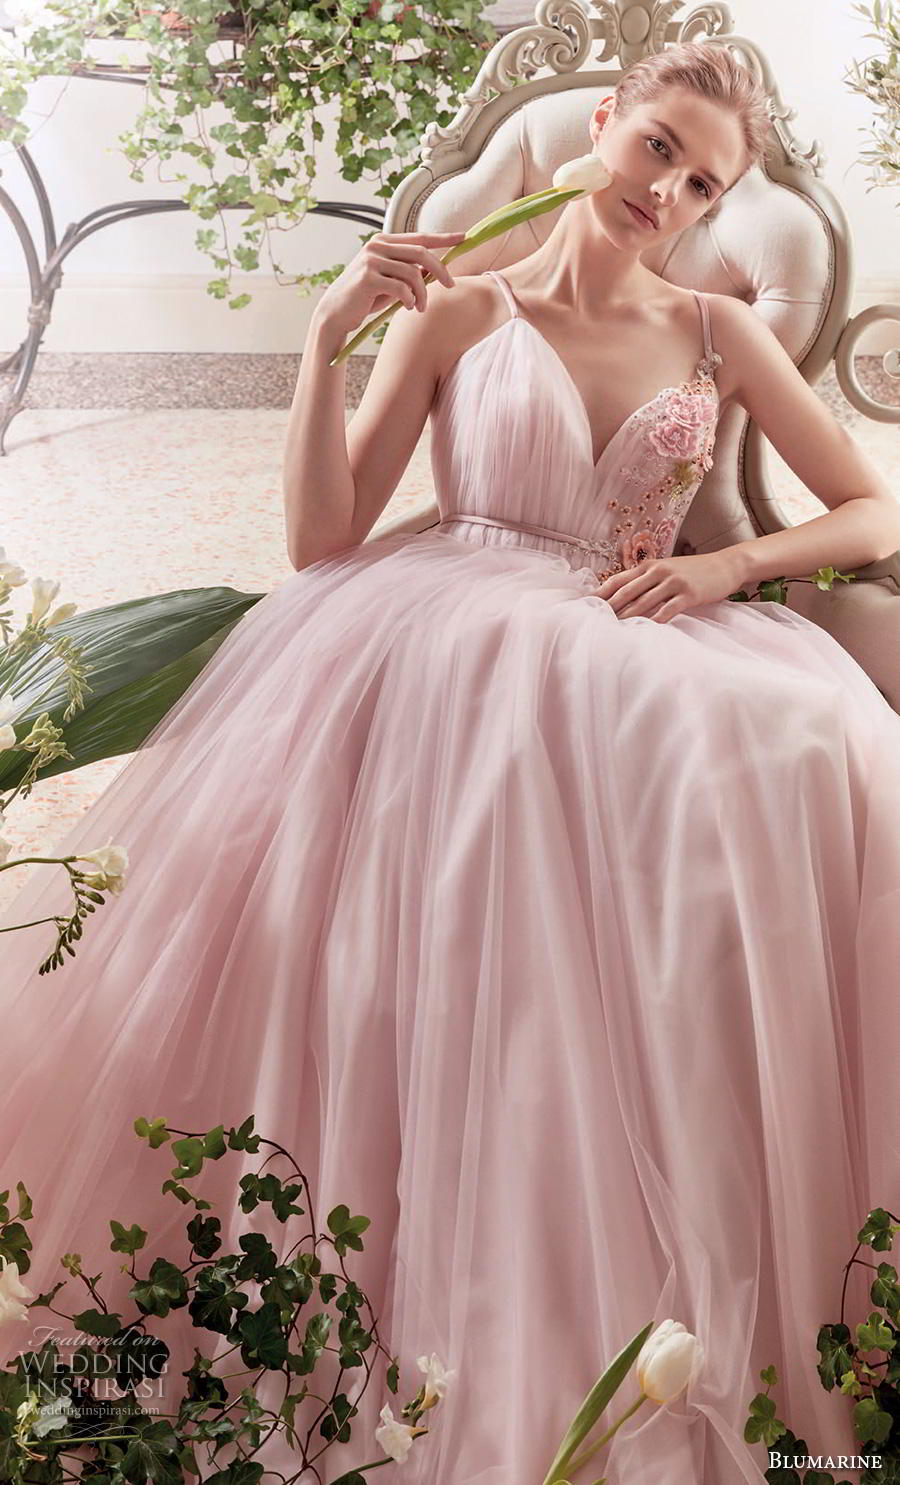 blumarine sposa 2019 bridal sleeveless thin strap sweetheart neckline ruched bodice tulle skirt romantic pink a  linw wedding dress open v back medium train (1) zv